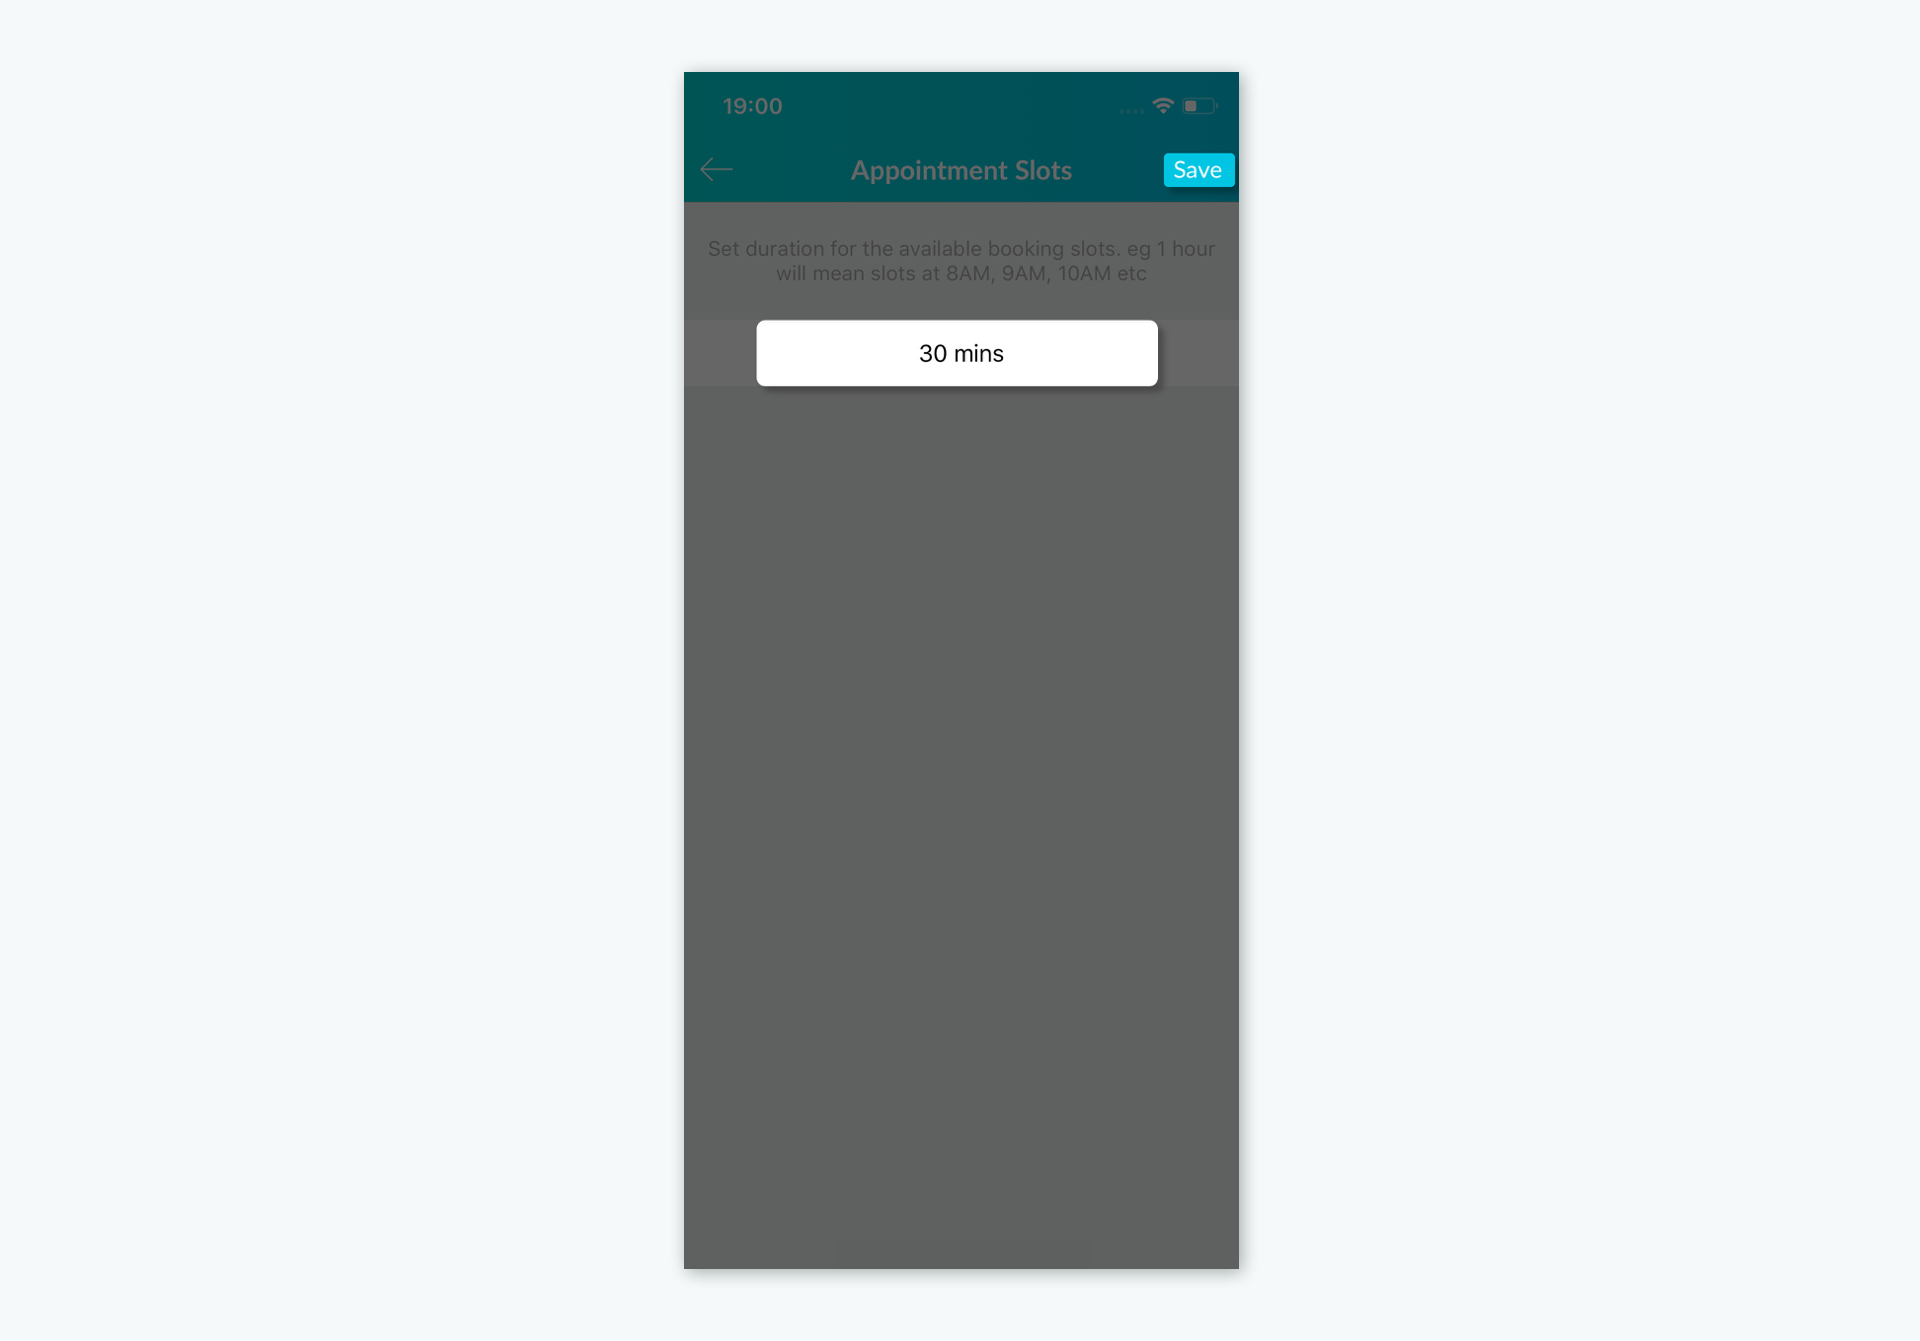 Configuring the Appointment Slot size in the Setmore mobile app